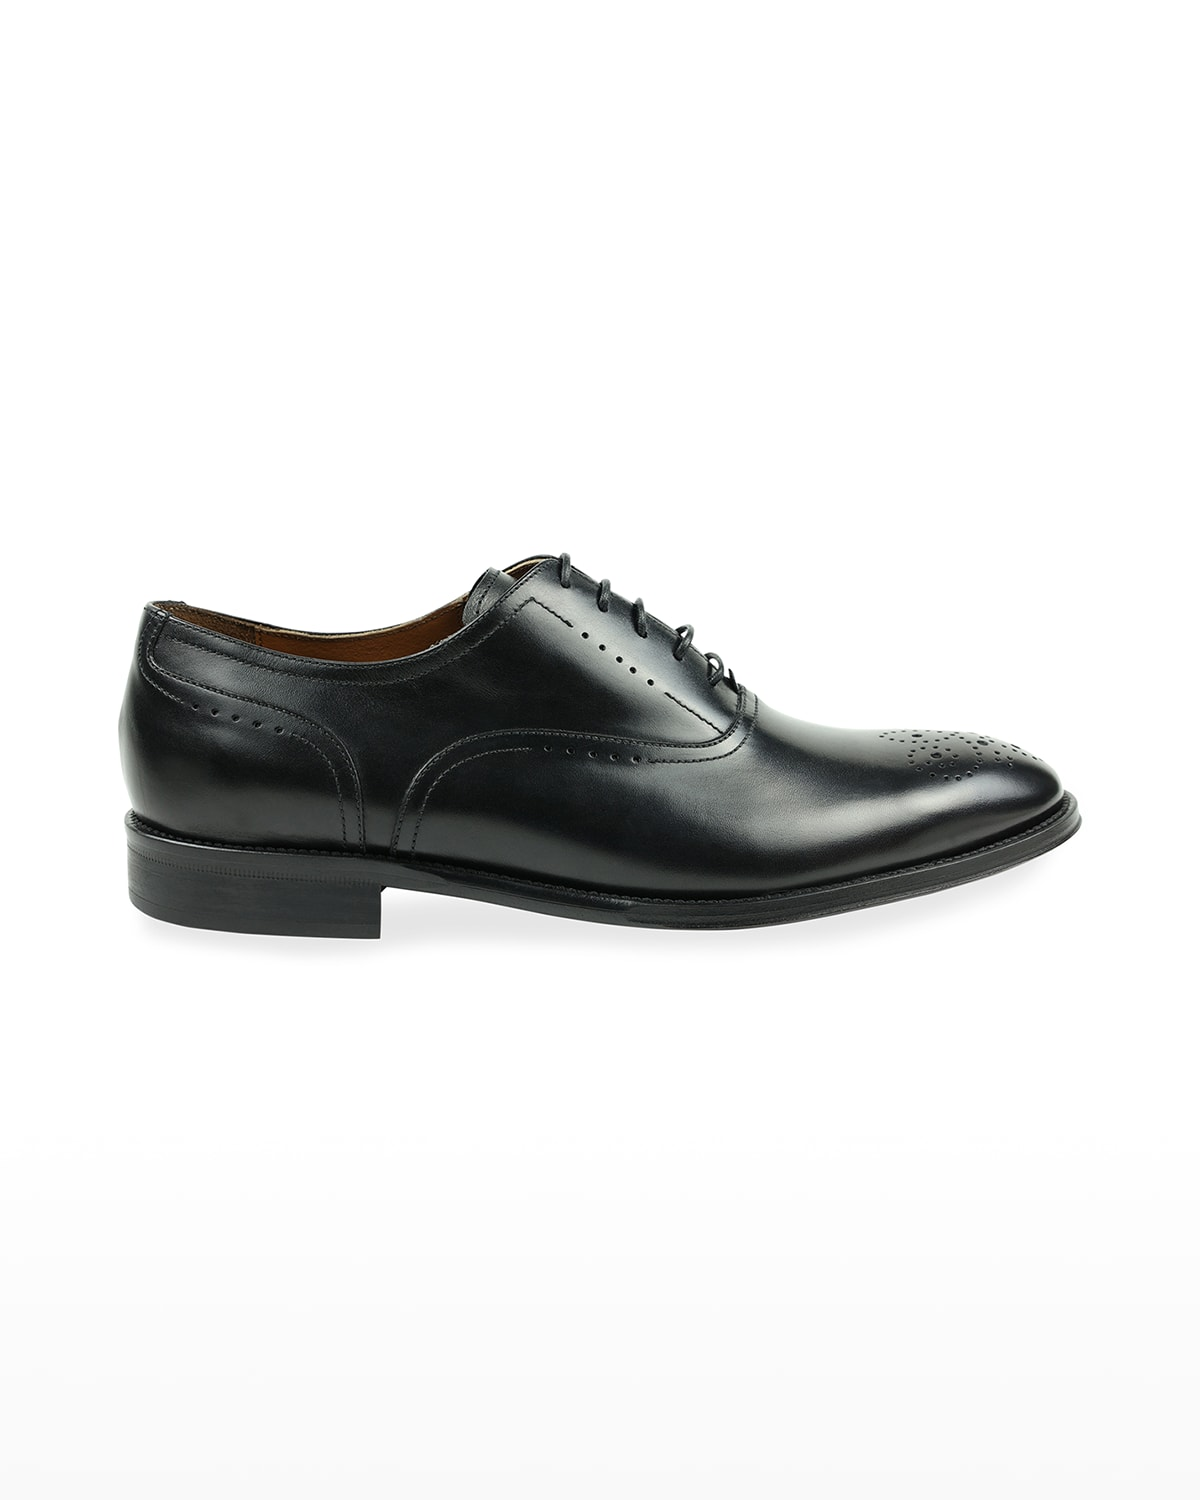 Men's Arno Perforated Leather Oxford Shoes